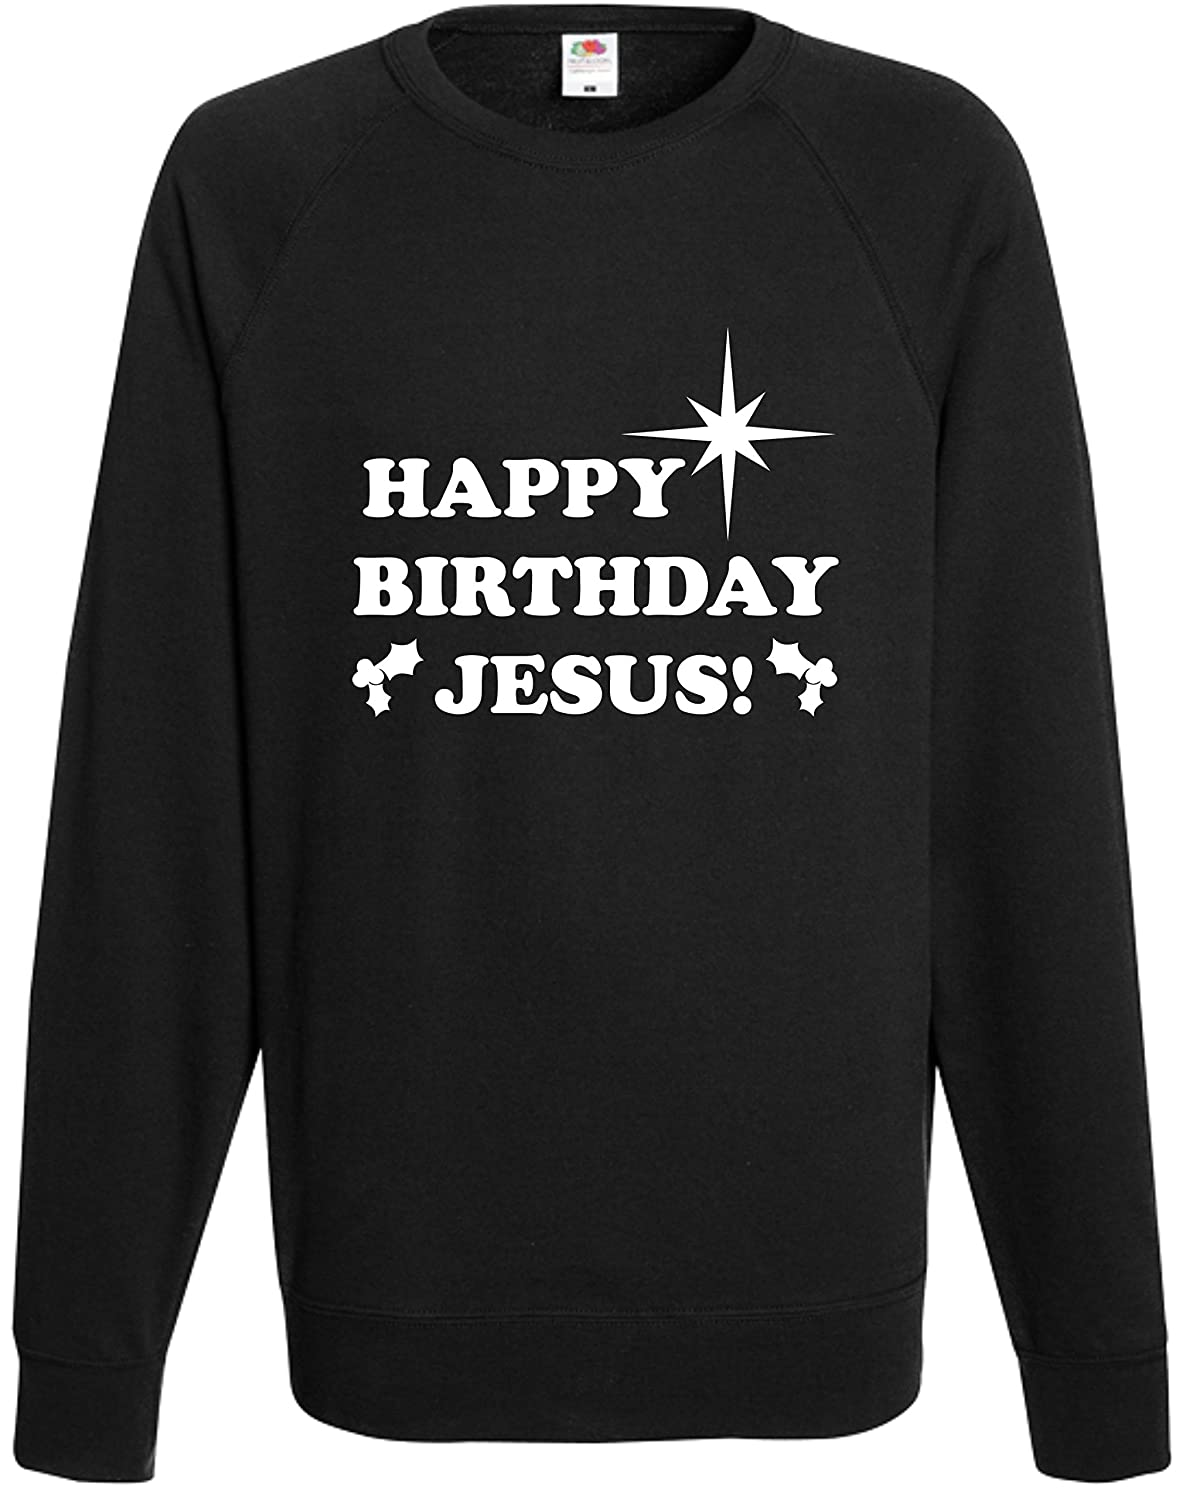 76567e3a6 Happy Birthday Jesus Sweatshirt Funny Christmas Jumper Comedy Gift Top  Present: Amazon.co.uk: Clothing